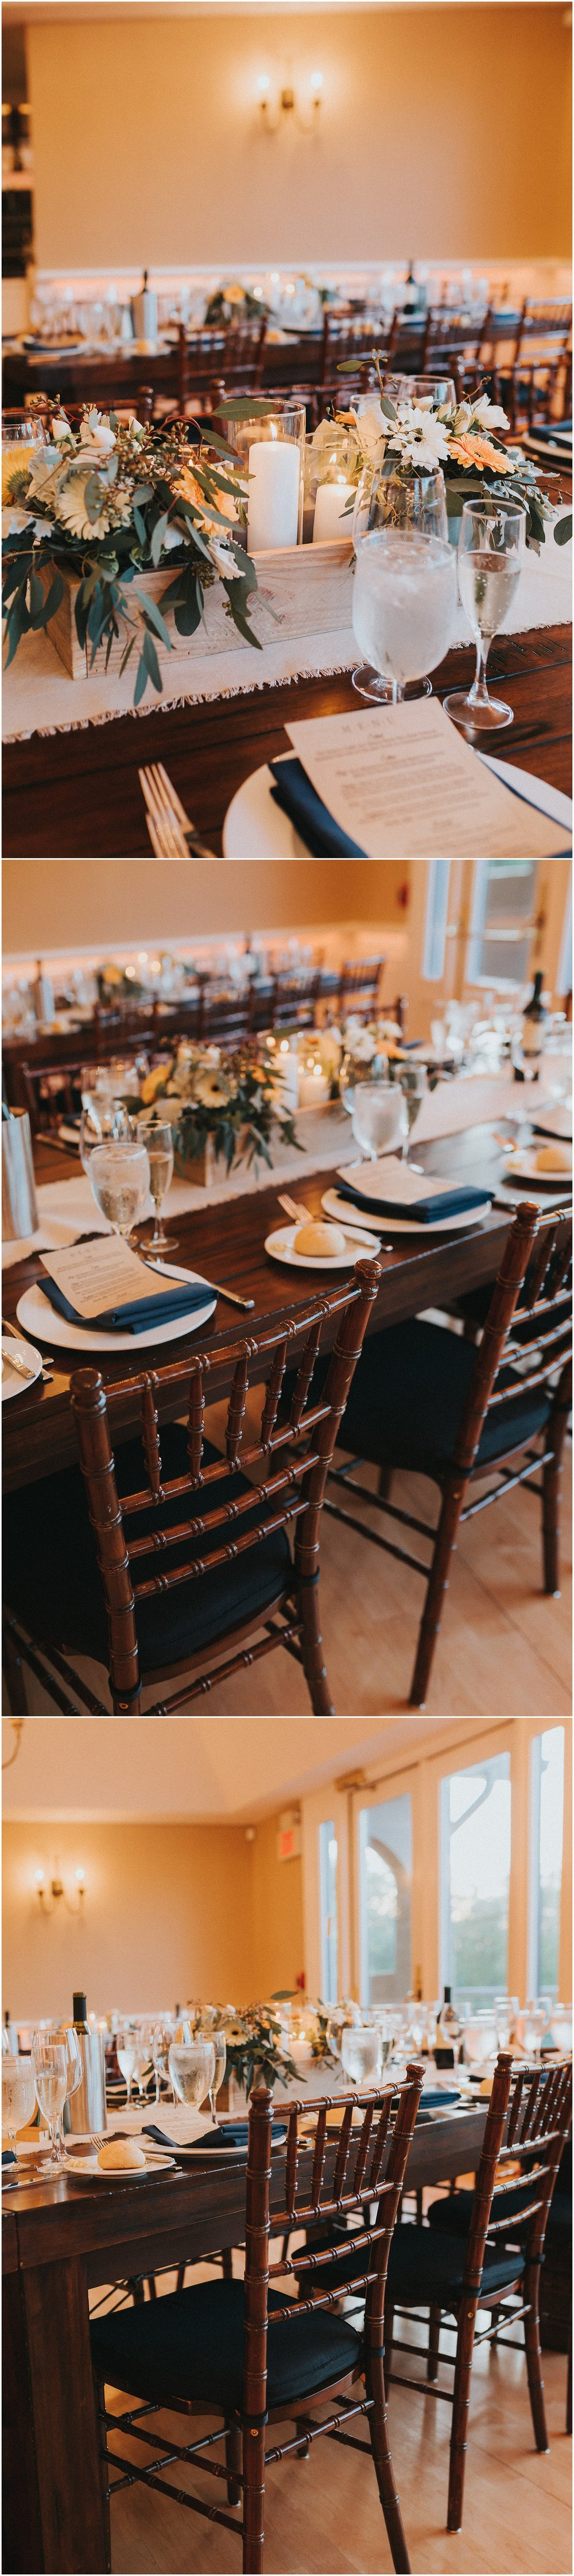 Wedding reception details at Rock Island Lake Club in New Jersey